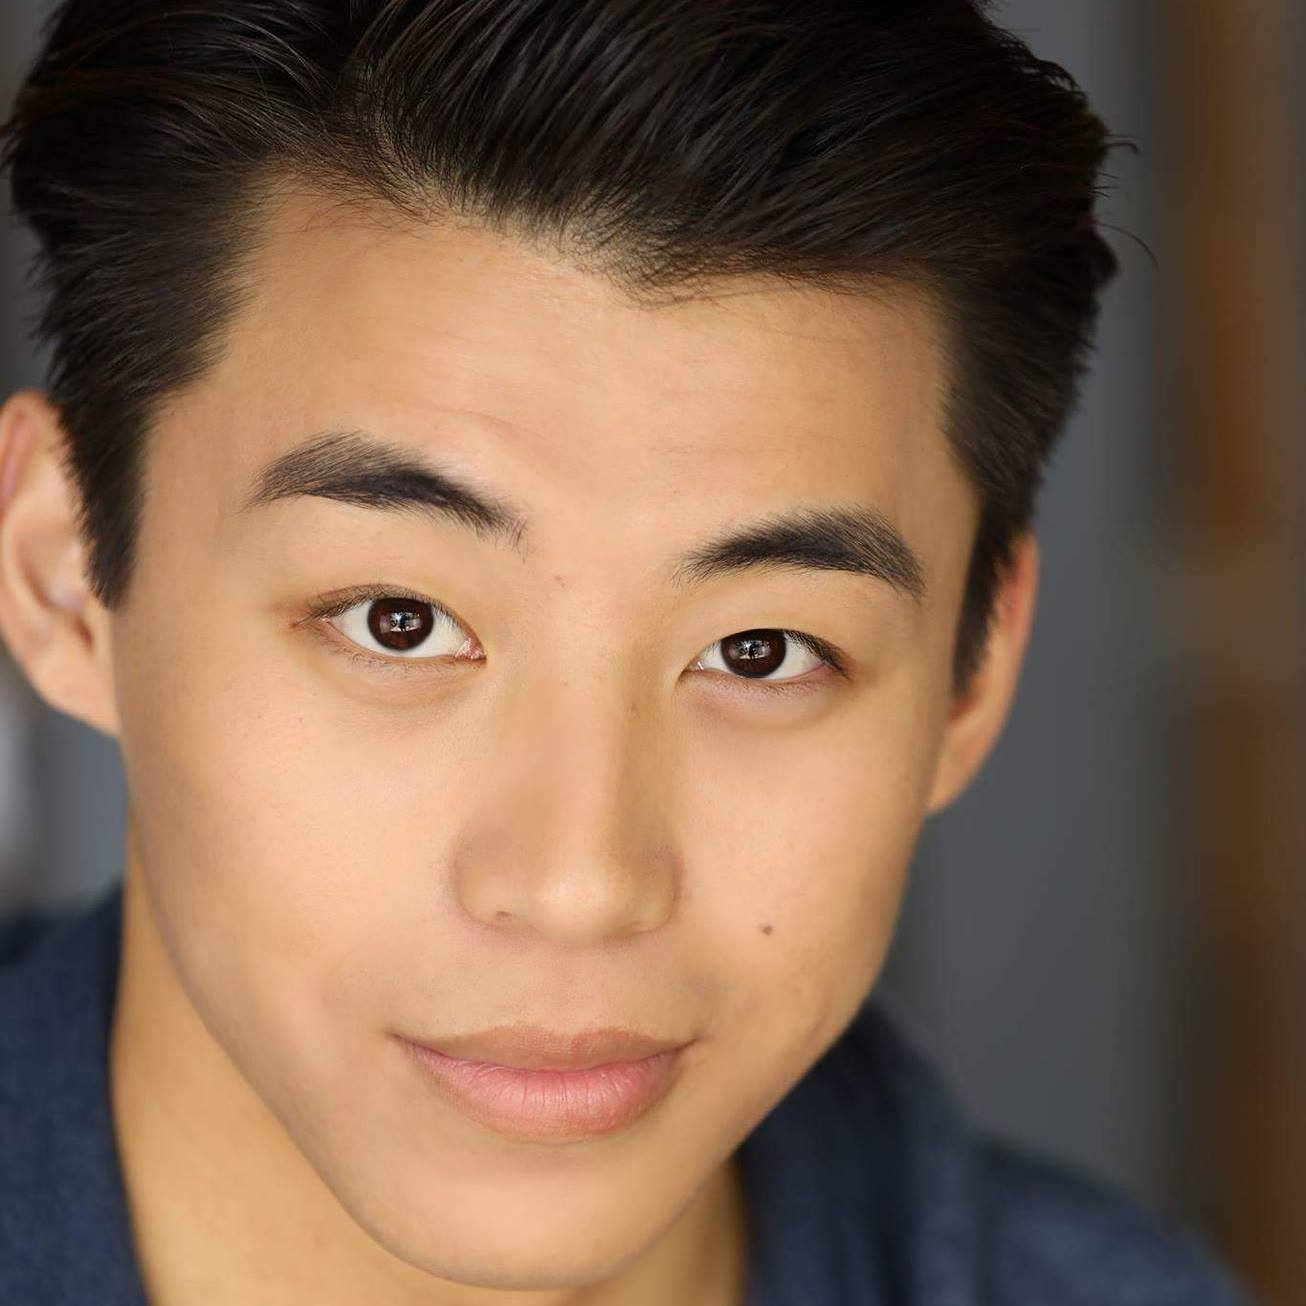 Actor-Producer Stan Vang will oversee the 3-camera shoot